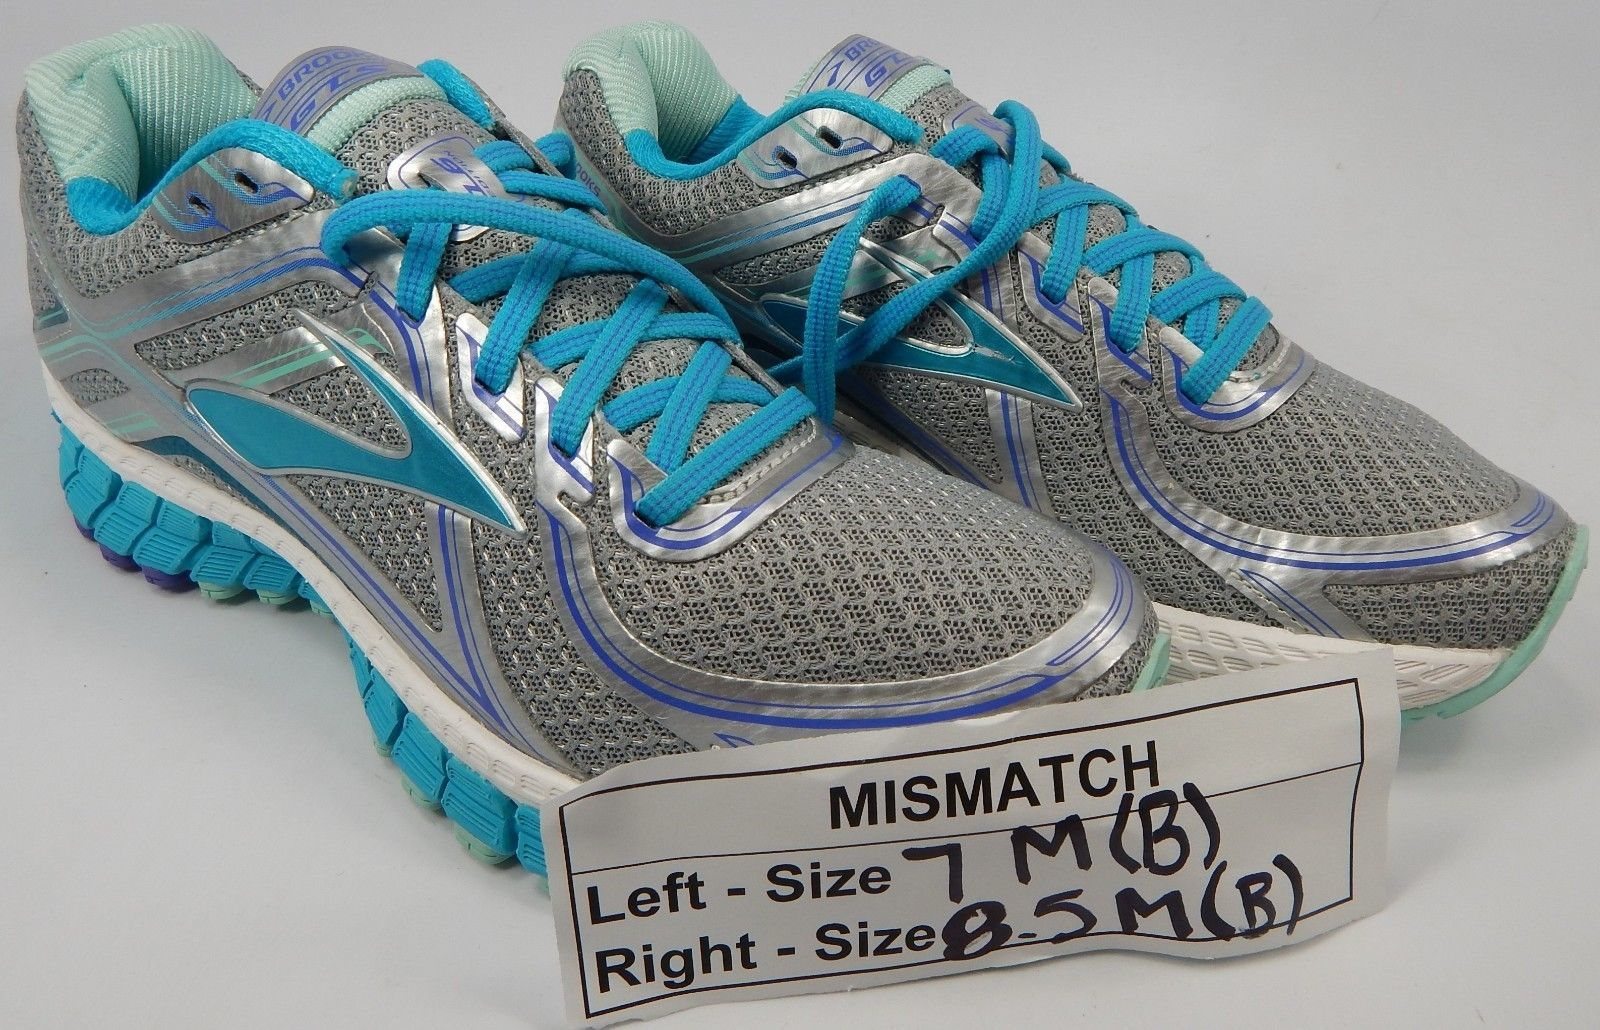 MISMATCH Brooks GTS 16 Size 7 M (B) Left & 8.5 M (B) Right Women's Running Shoes